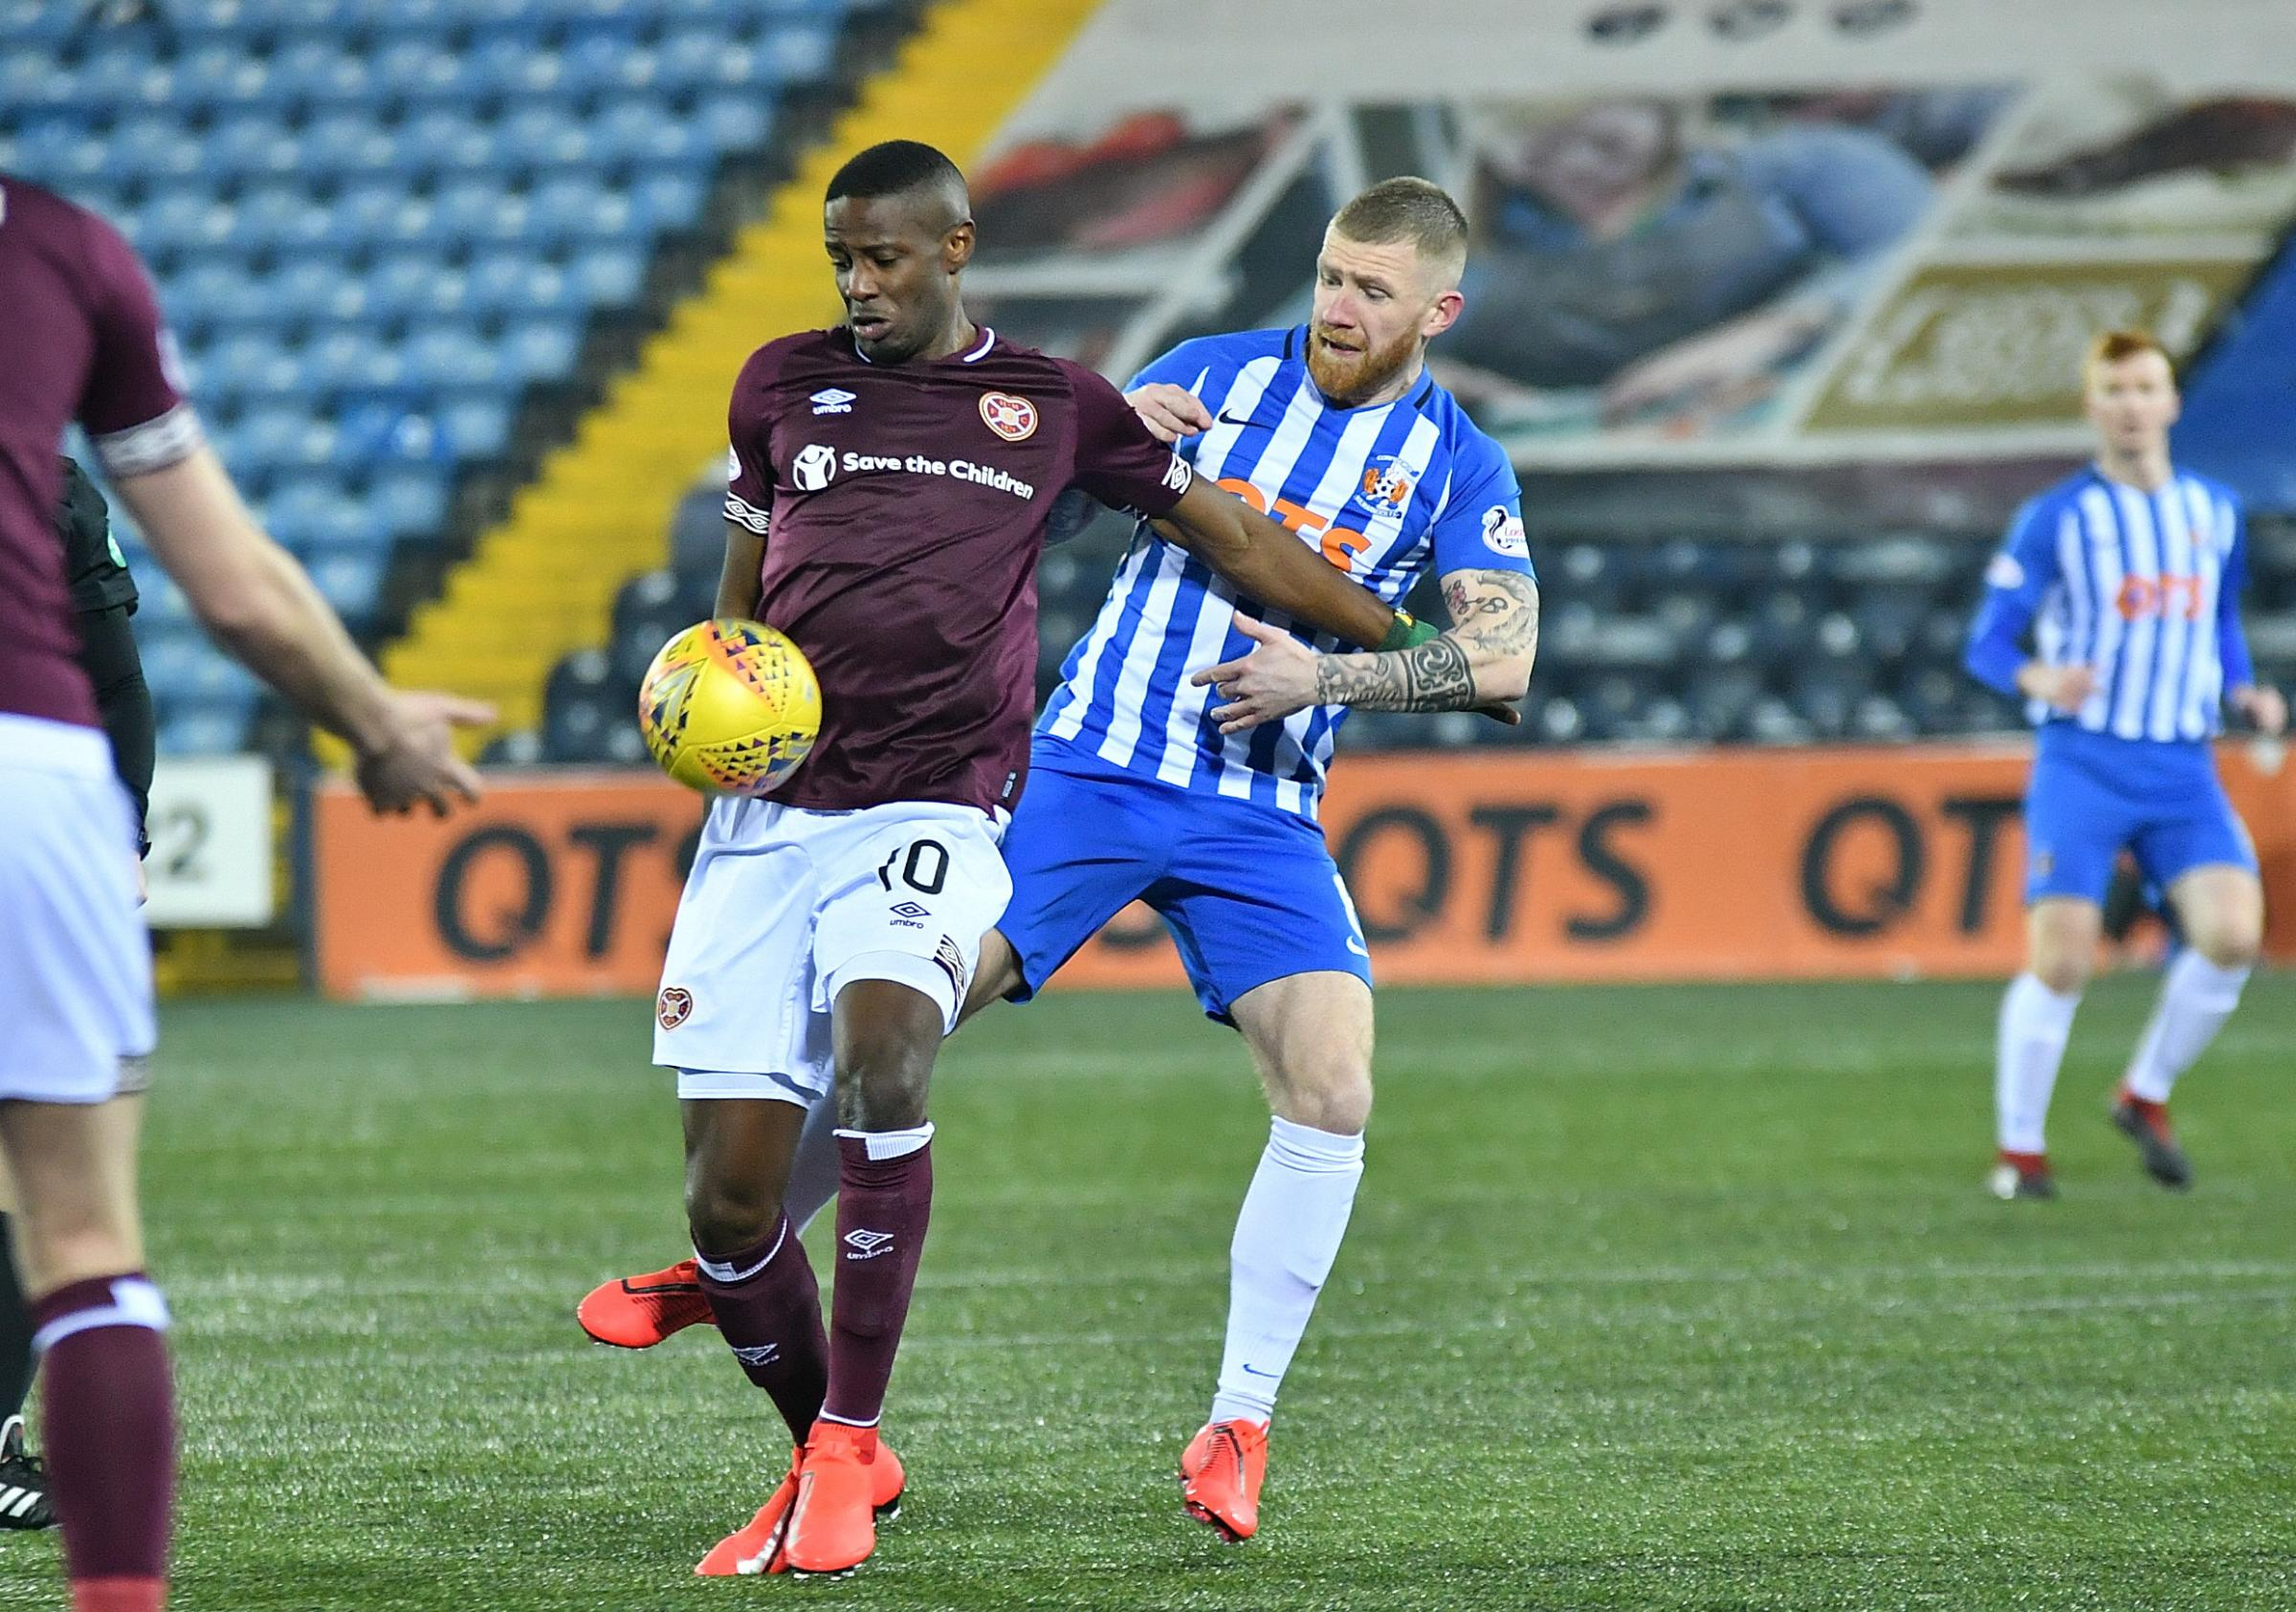 KILLIE POWERLESS: Alan Power loses out in a challenge to Hearts. Picture: Ross Mackenzie.